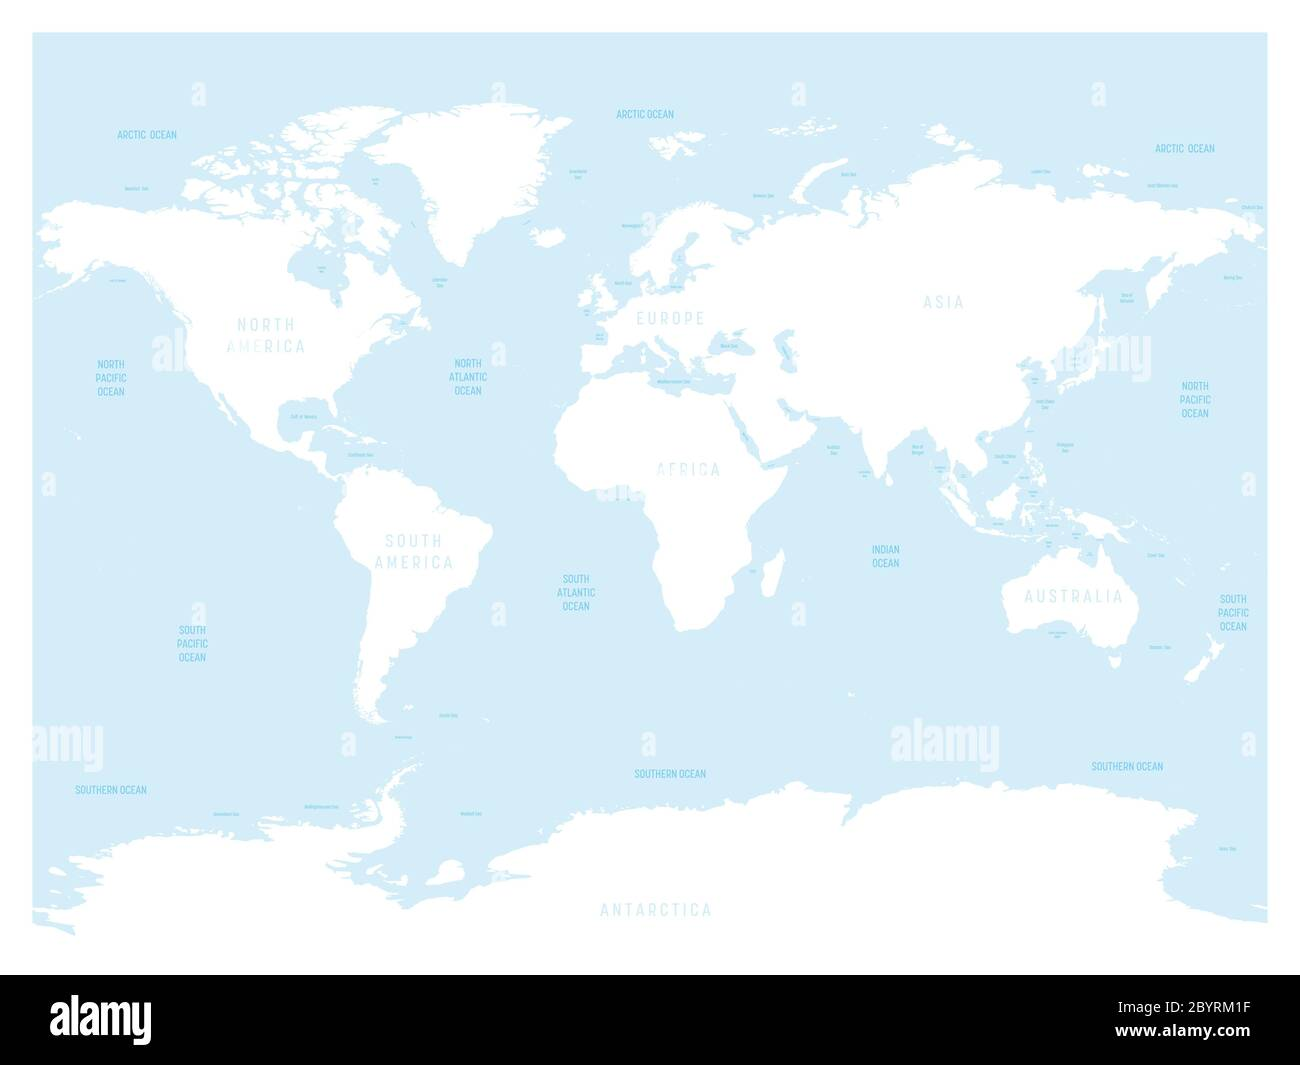 Image of: Hydrological Map Of World With Labels Of Oceans Seas Gulfs Bays And Straits Vector Map With White Lands And Blue Water Stock Vector Image Art Alamy